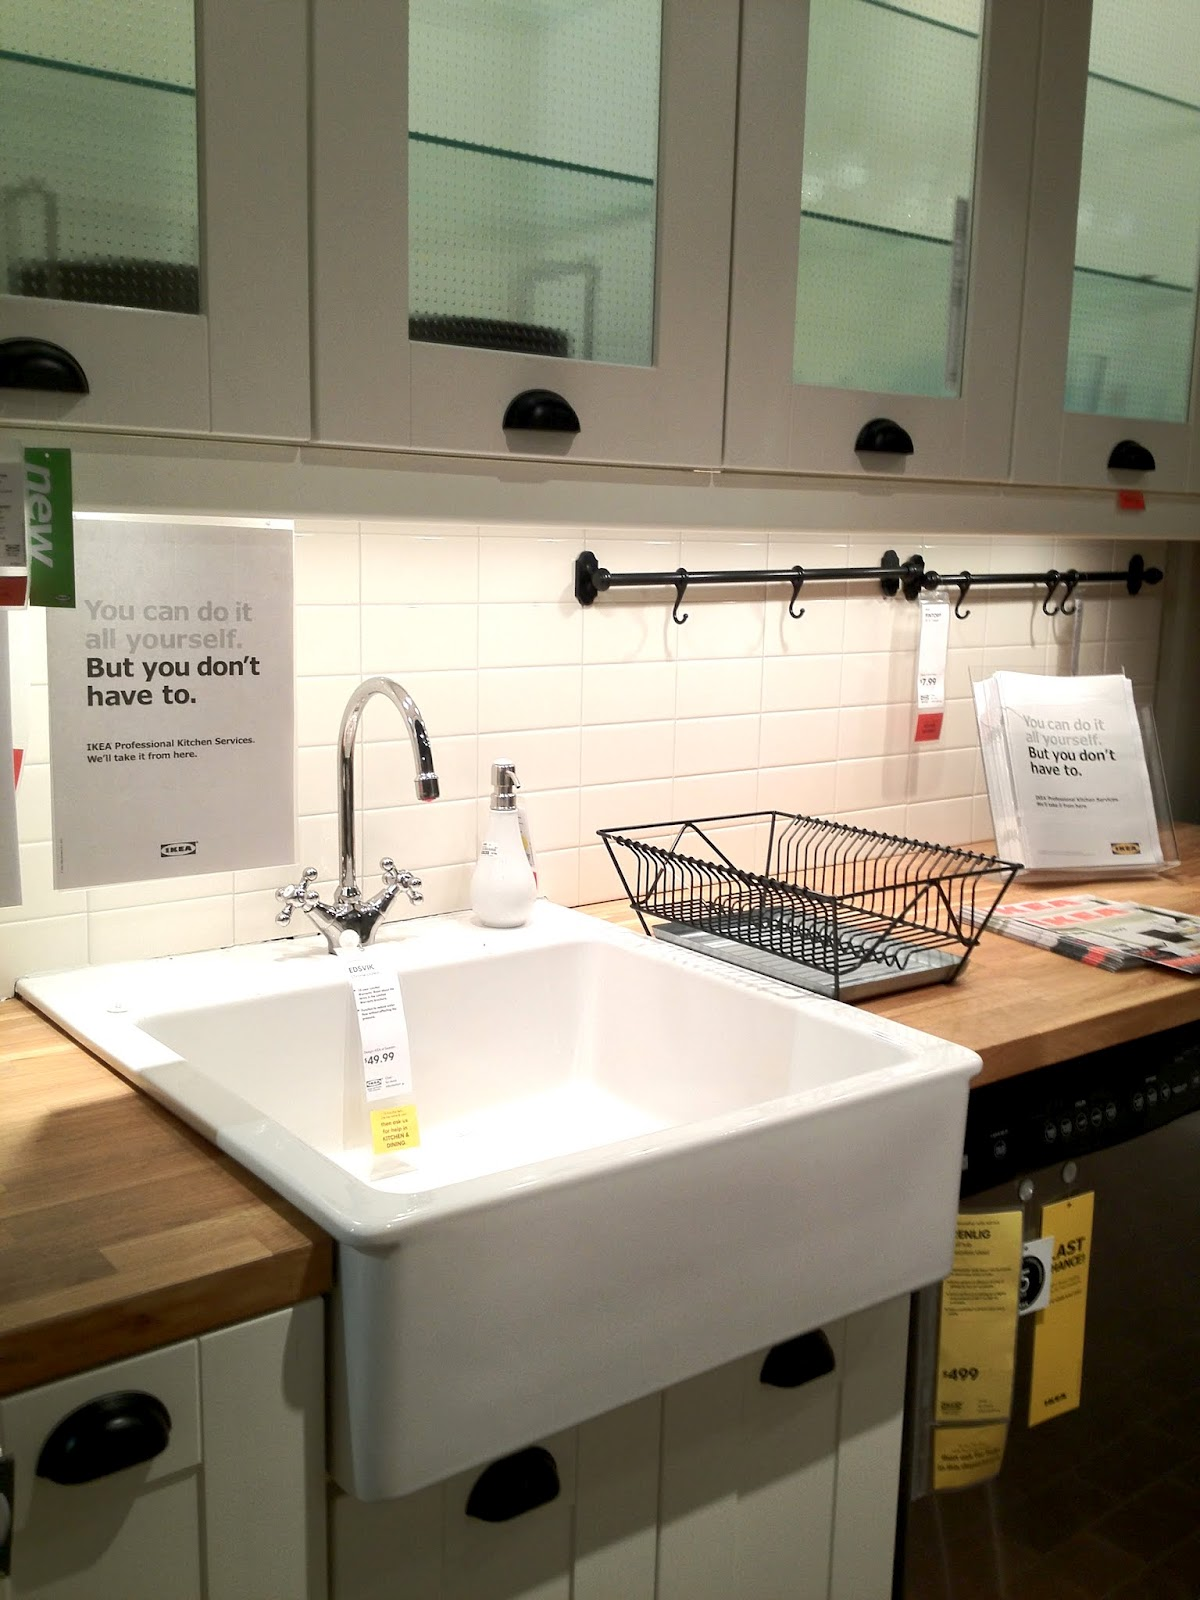 Farm Sink Ikea: Its Special Characteristics And Materials